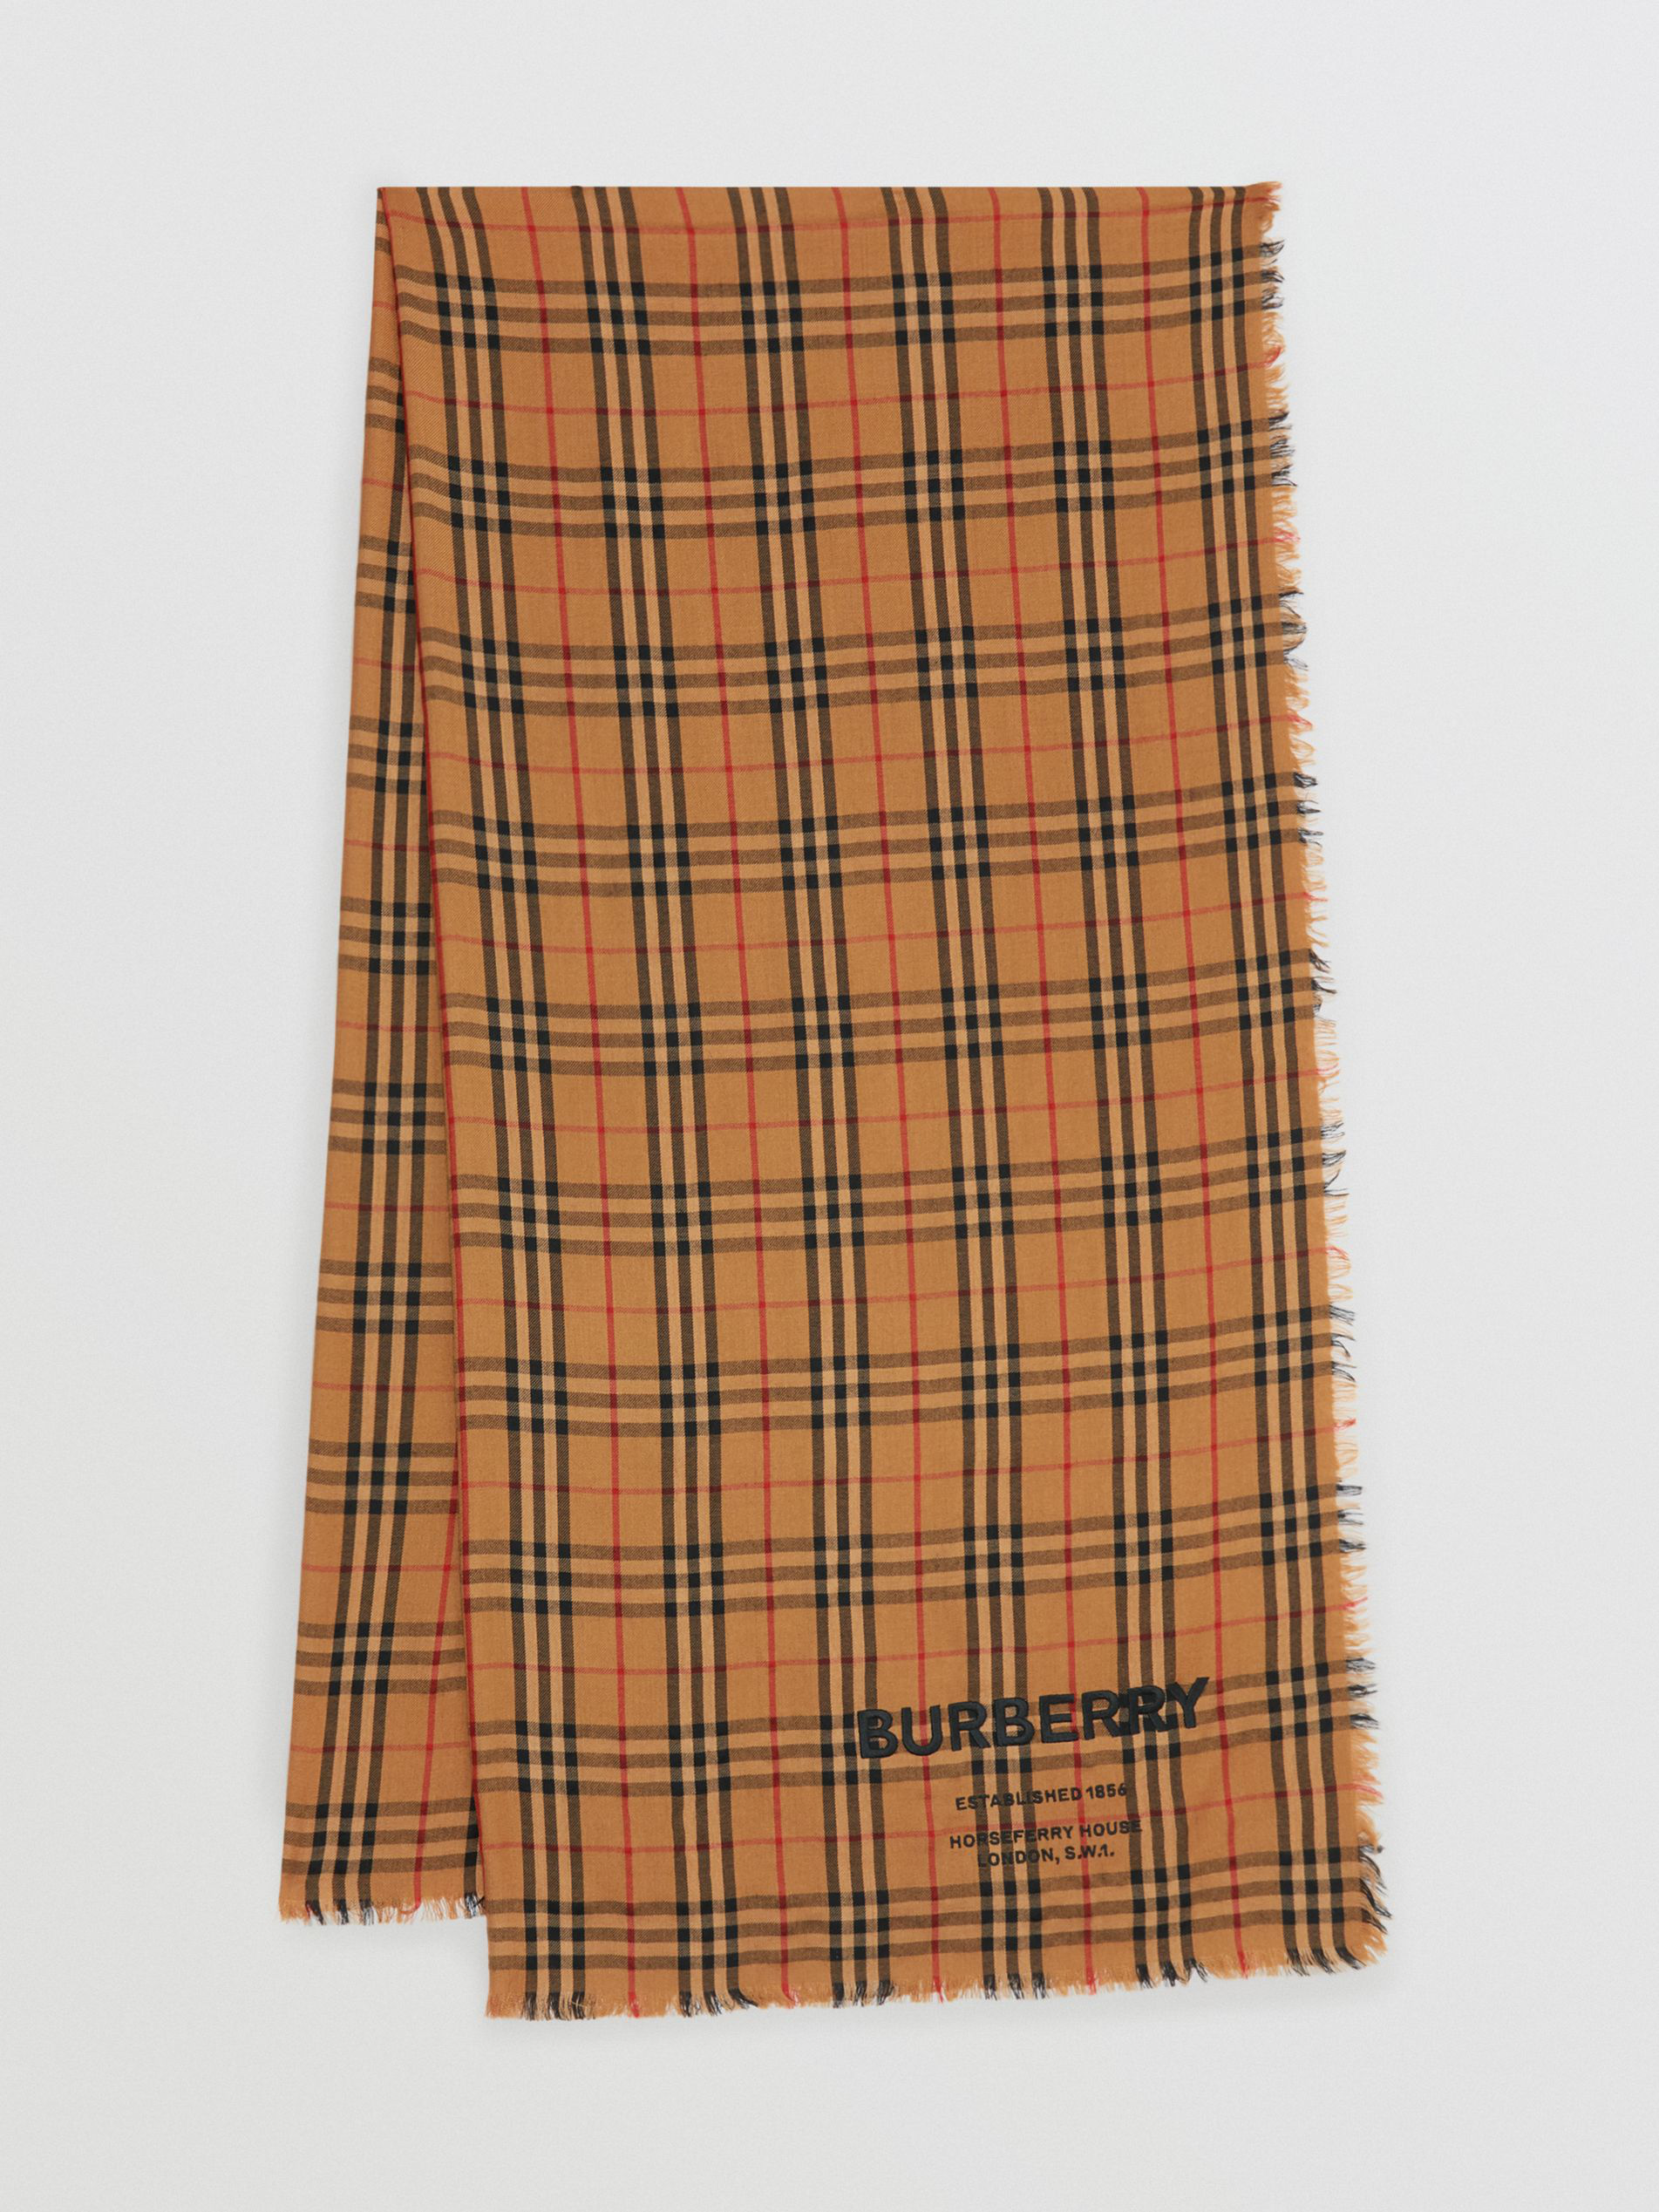 Burberry Embroidered Vintage Check Lightweight Cashmere Scarf In Camel